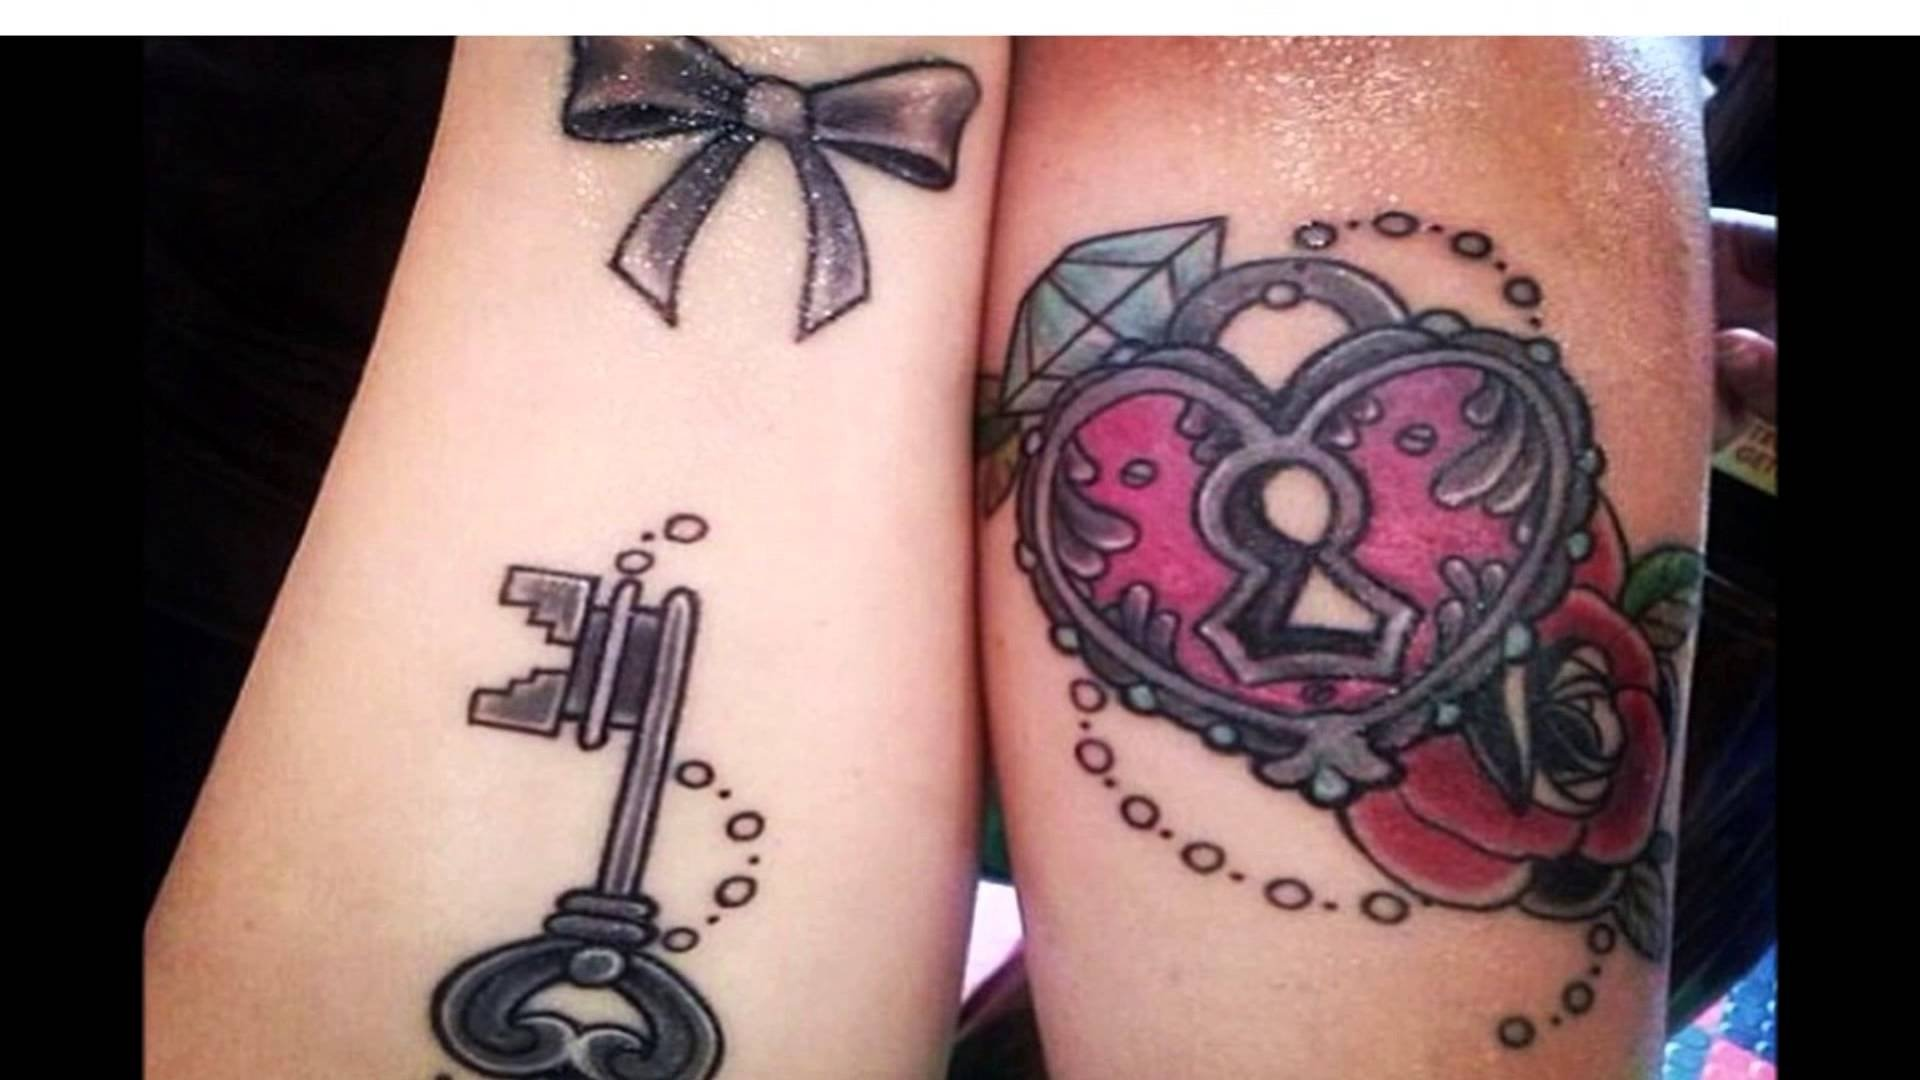 10 Fabulous His And Her Tattoos Ideas his and her tattoo ideas youtube 1